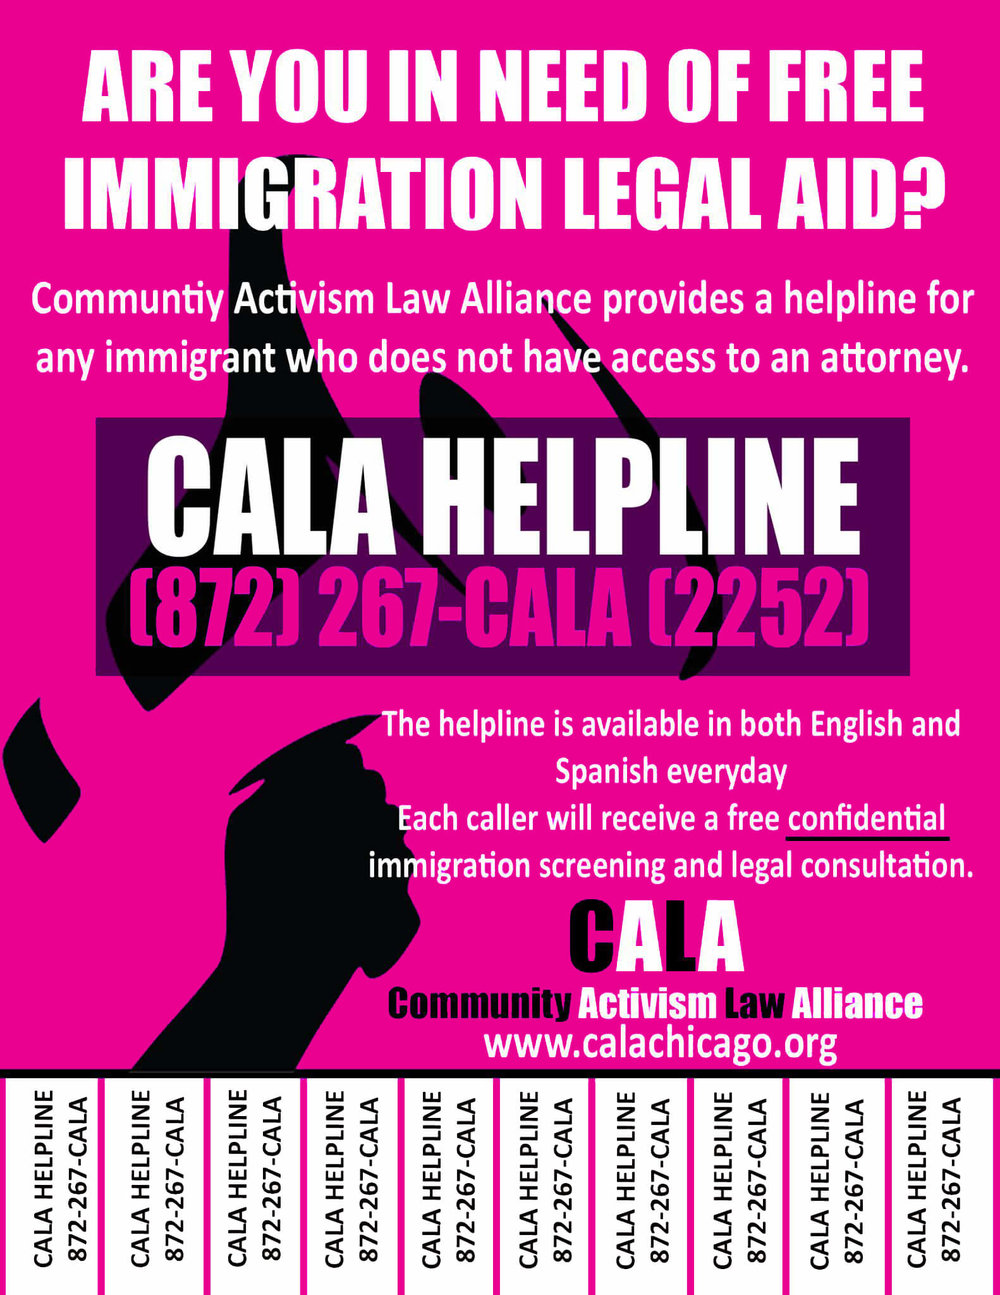 Immigration Helpline